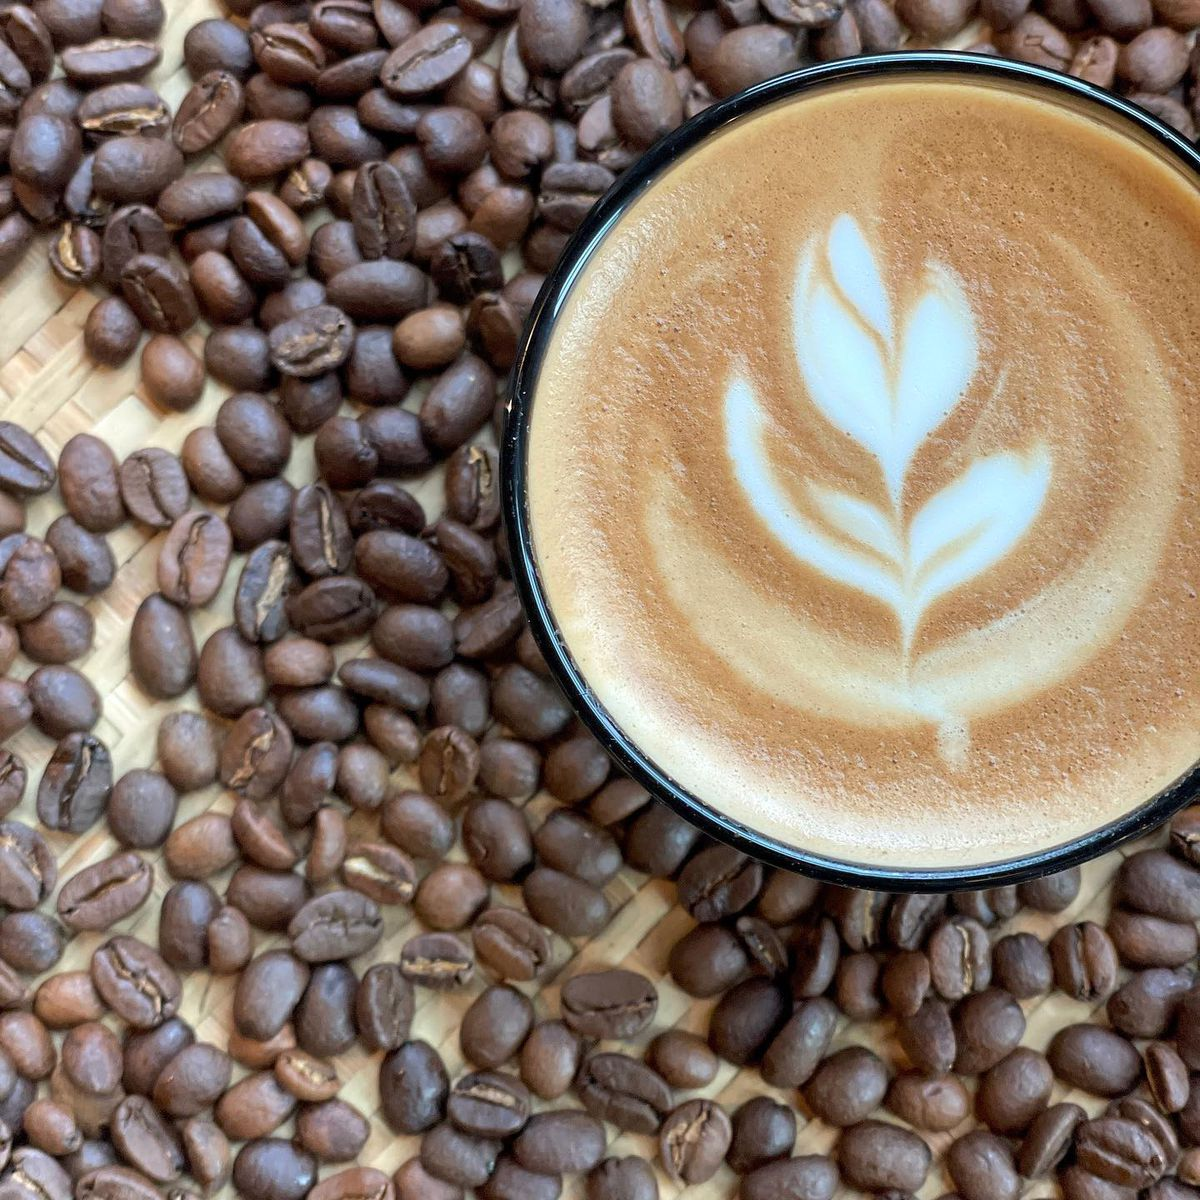 Top-down view of a latte with a flower design against the backdrop of coffee beans